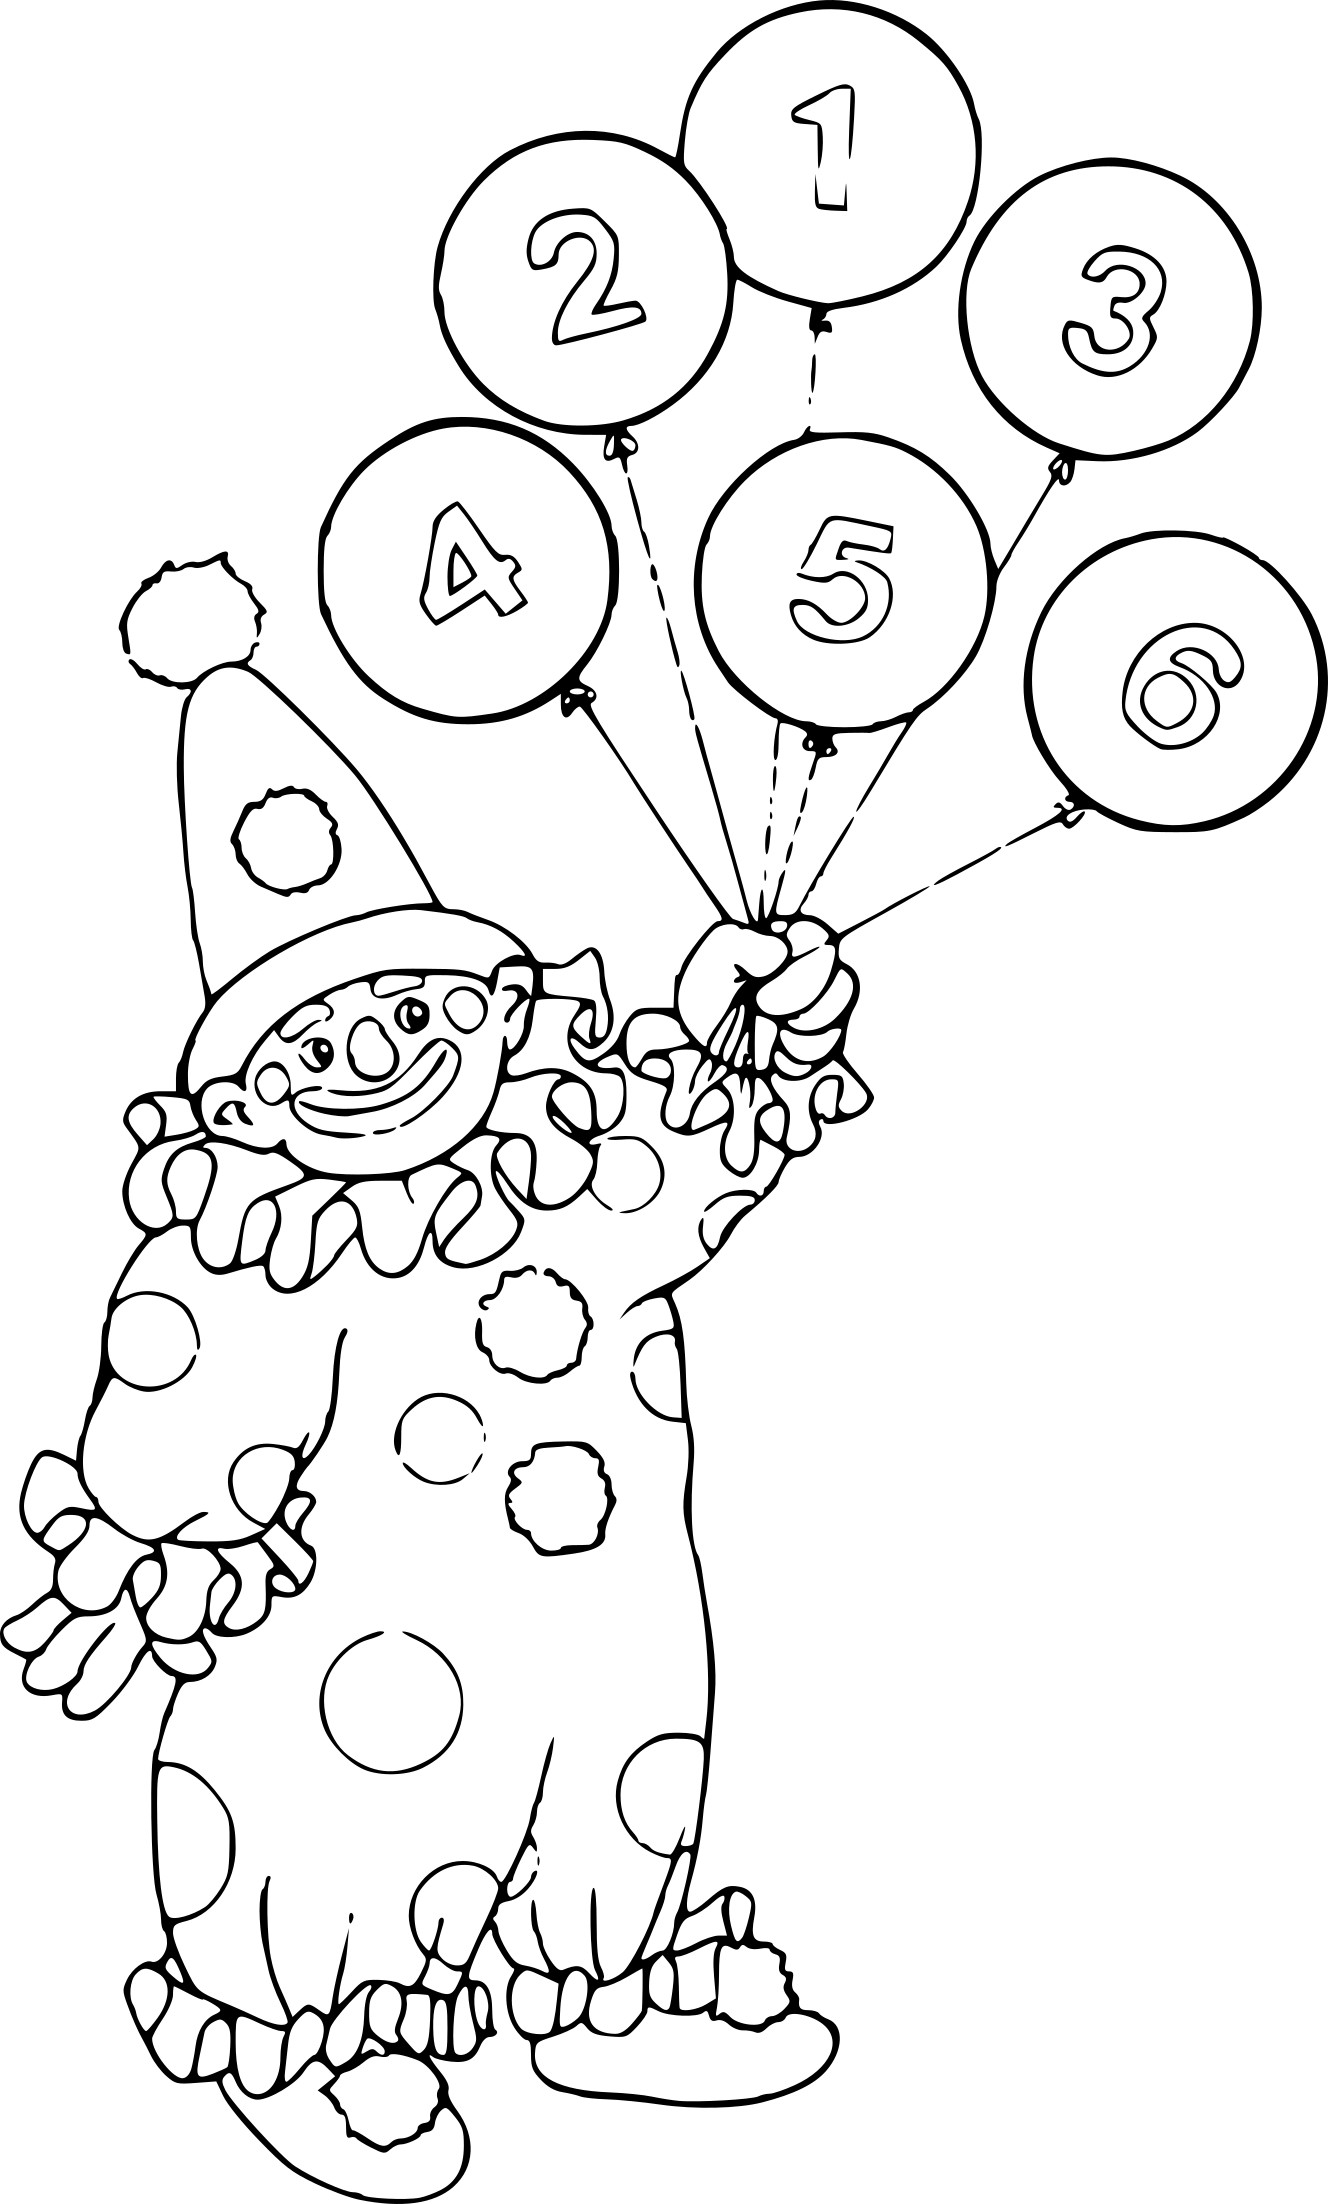 Coloriage Clown Ballon A Imprimer Sur Coloriages Info